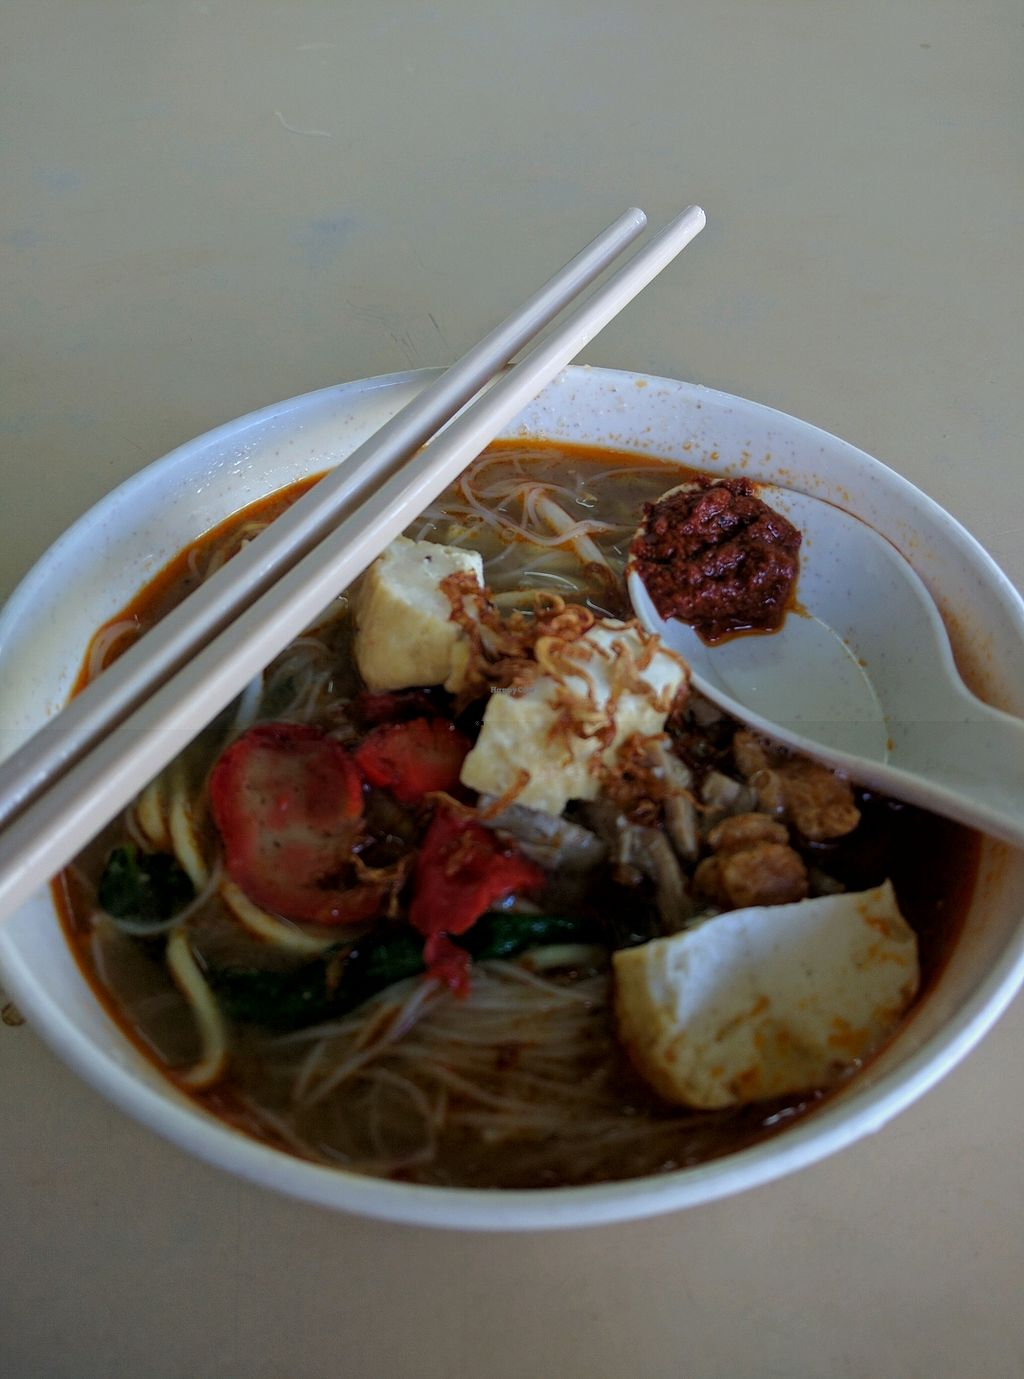 """Photo of Jian Jian Vegetarian Food  by <a href=""""/members/profile/Summer_Tan"""">Summer_Tan</a> <br/>Monday's Special: Hokkien Mee Cheap, generous with toppings, good portion. The Broth is flavourful with the good spicy chilli <br/> January 28, 2018  - <a href='/contact/abuse/image/87563/352096'>Report</a>"""